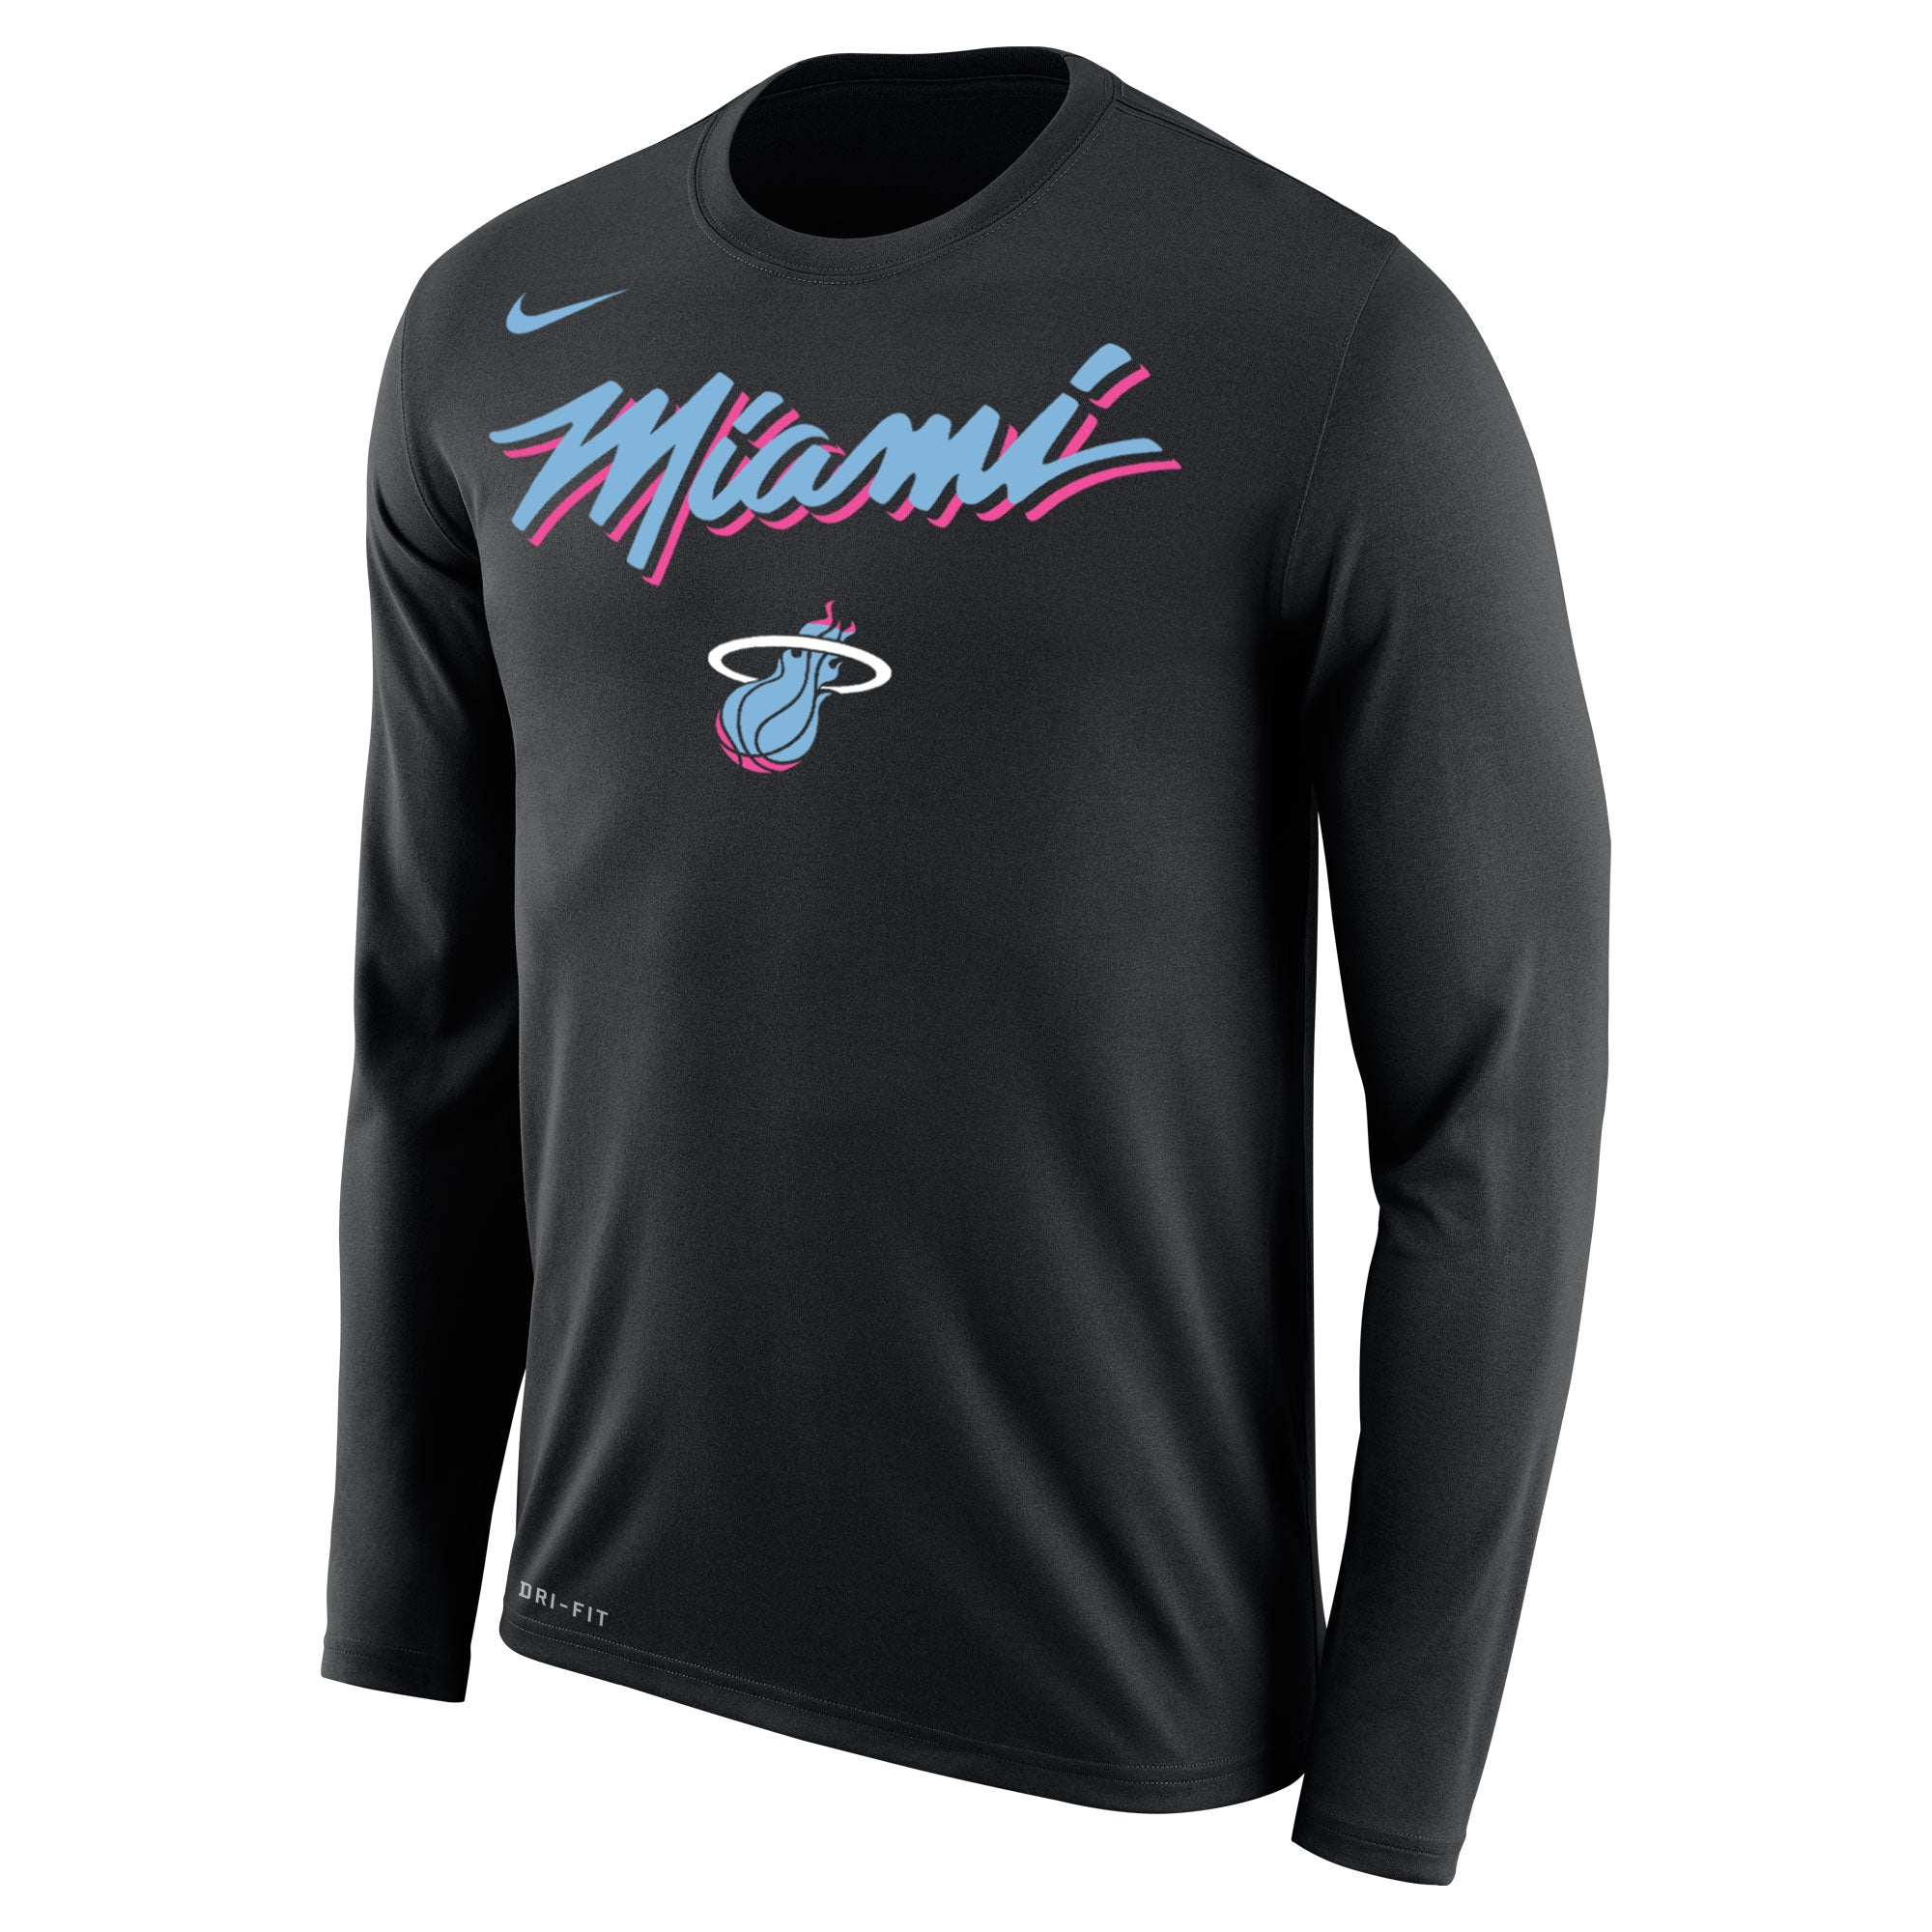 270396cb Nike Vice Nights Legend Long Sleeve MIAMI Tee – Miami HEAT Store